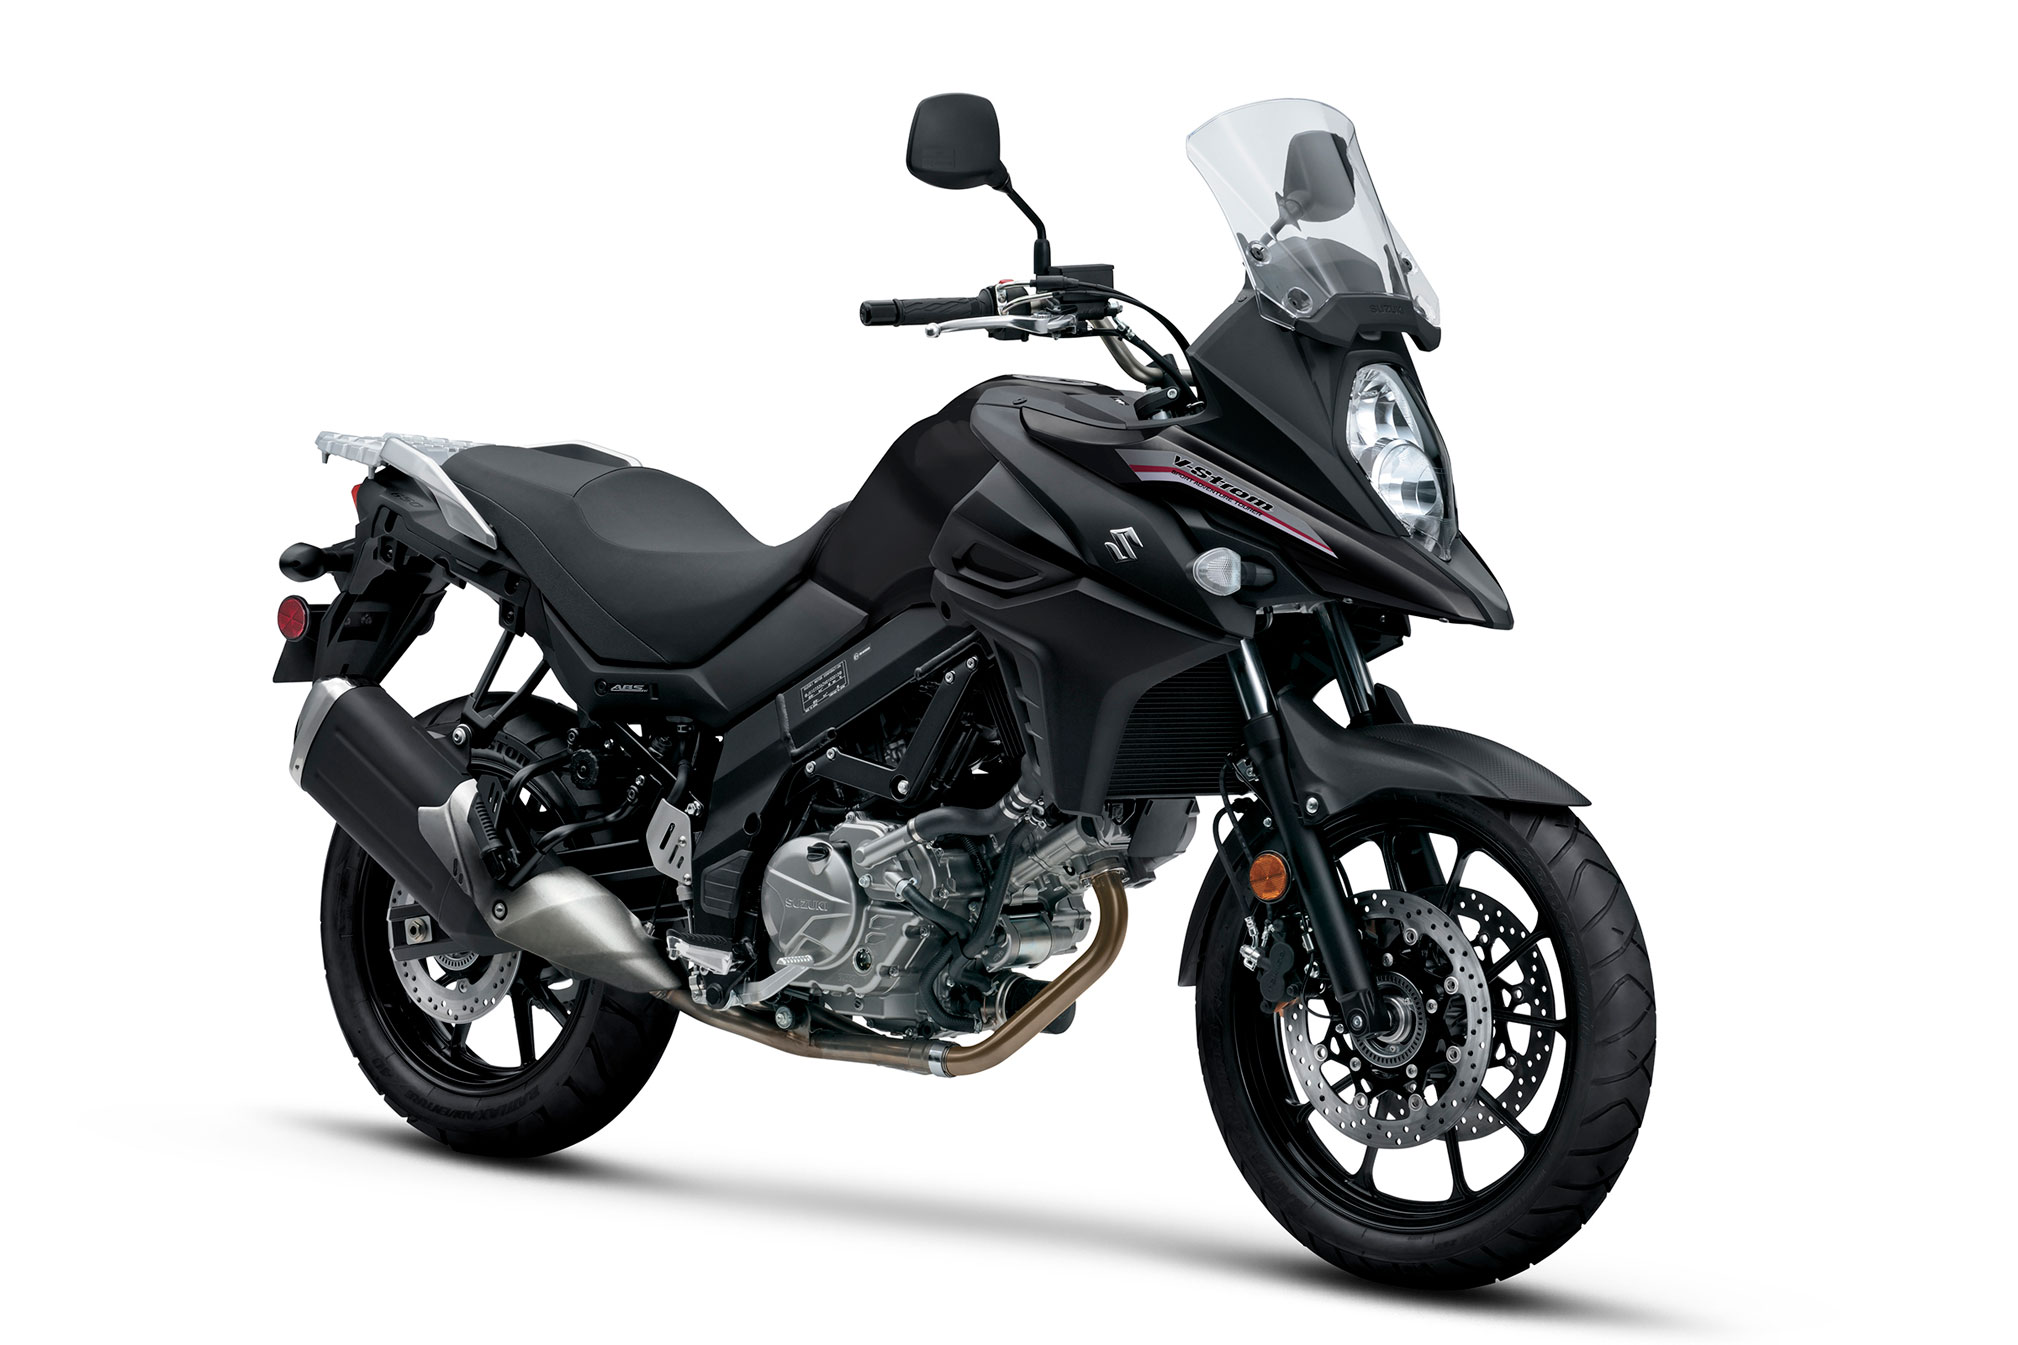 2018 suzuki v strom 650 review totalmotorcycle. Black Bedroom Furniture Sets. Home Design Ideas